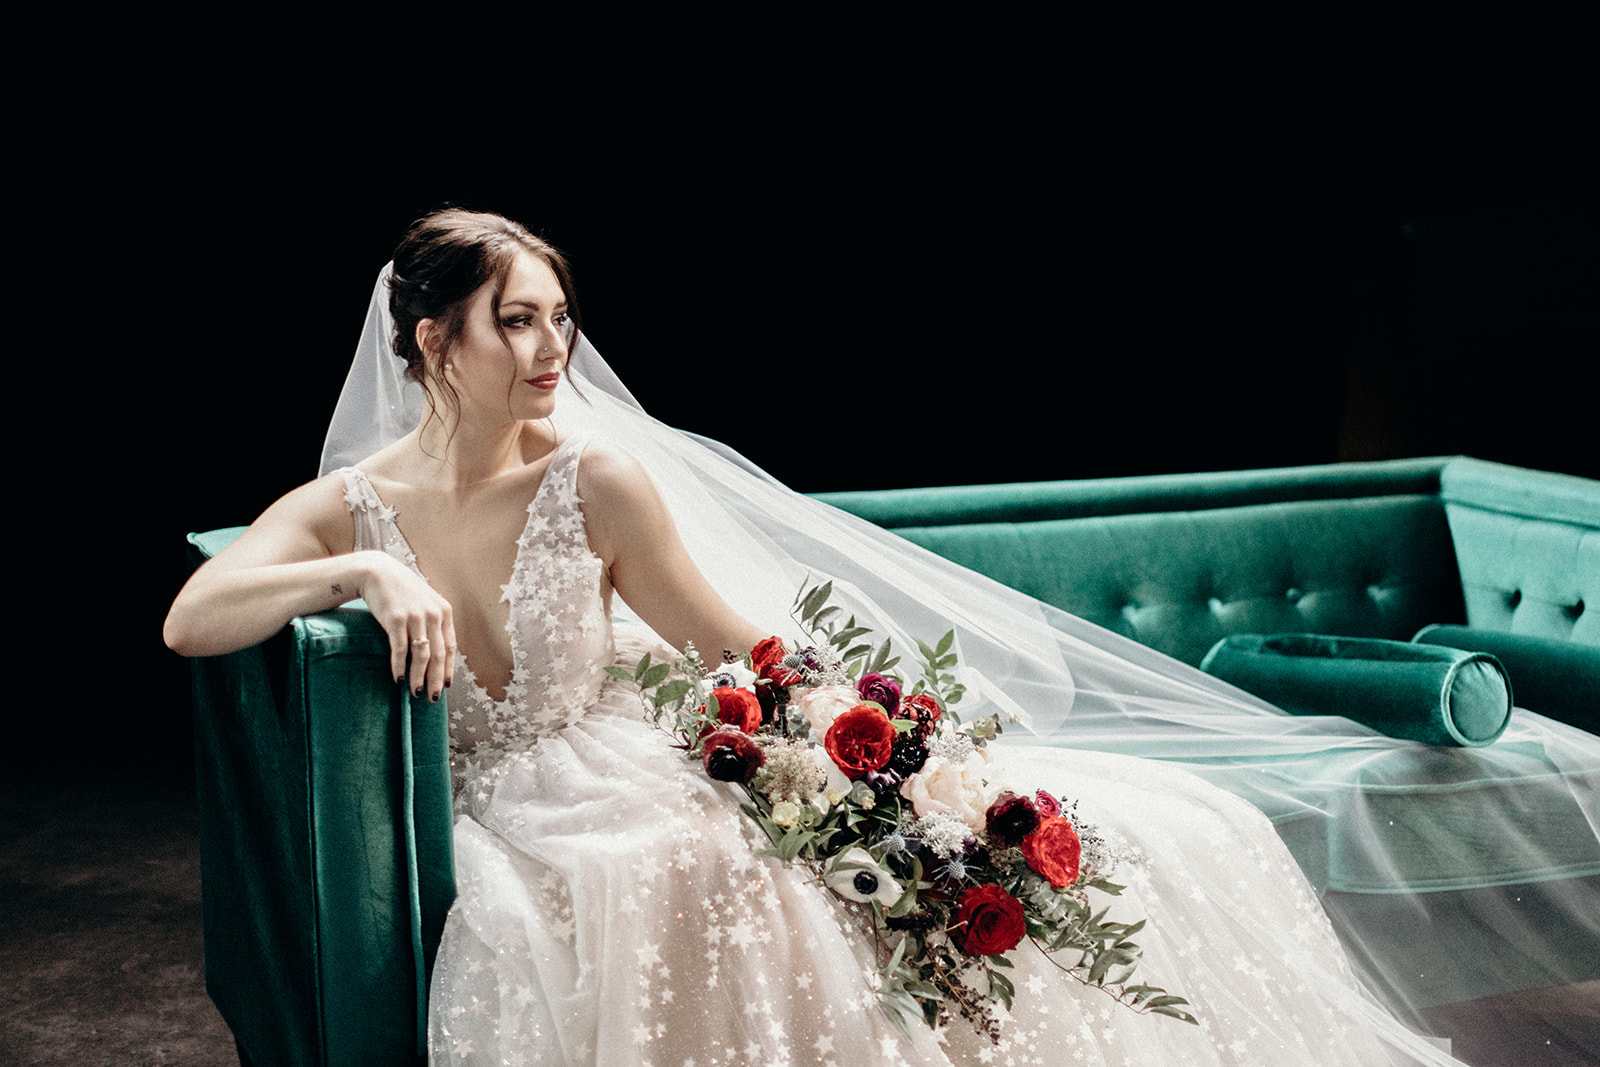 Starry wedding dress with an untamed, airy bridal bouquet with garden roses, ranunculus, and anemones in hues of burgundy and jewel tones. Bonus: green velvet couch! Wedding Floral Designer in Nashville, TN.